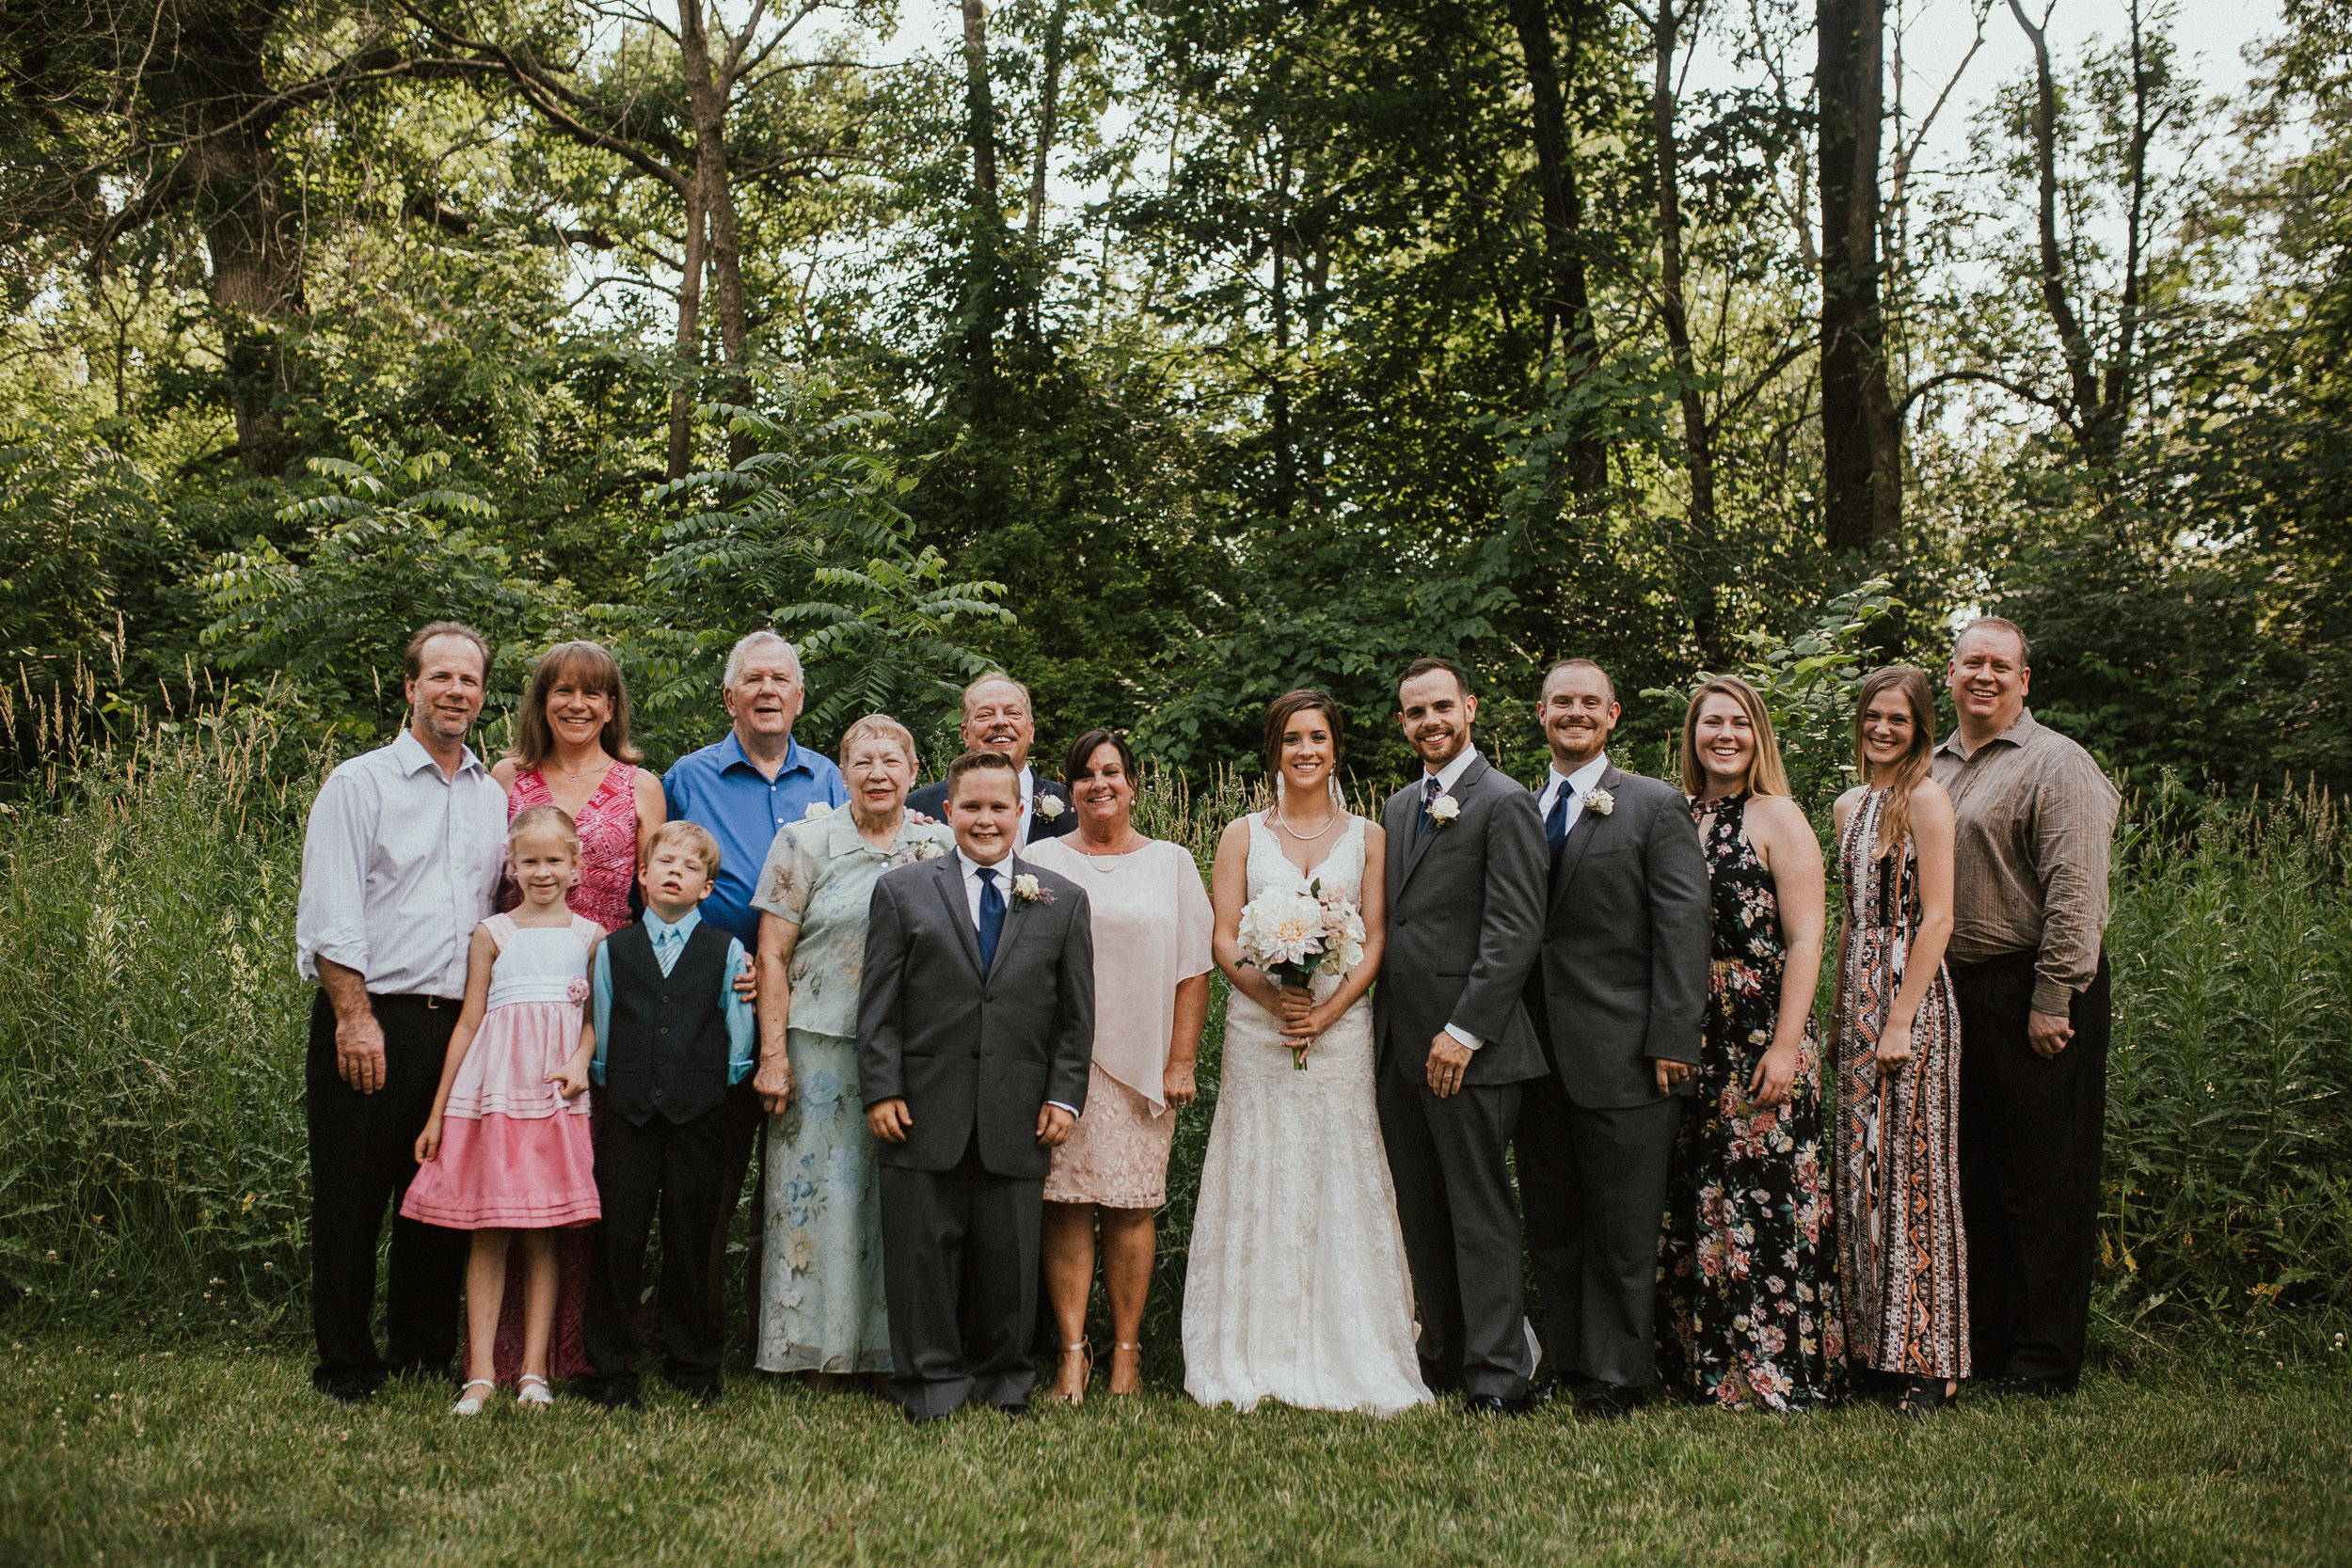 EADS-WEDDING-REAGANLYNNPHOTOGRAPHY-ANDERSON-INDIANA-22.jpg